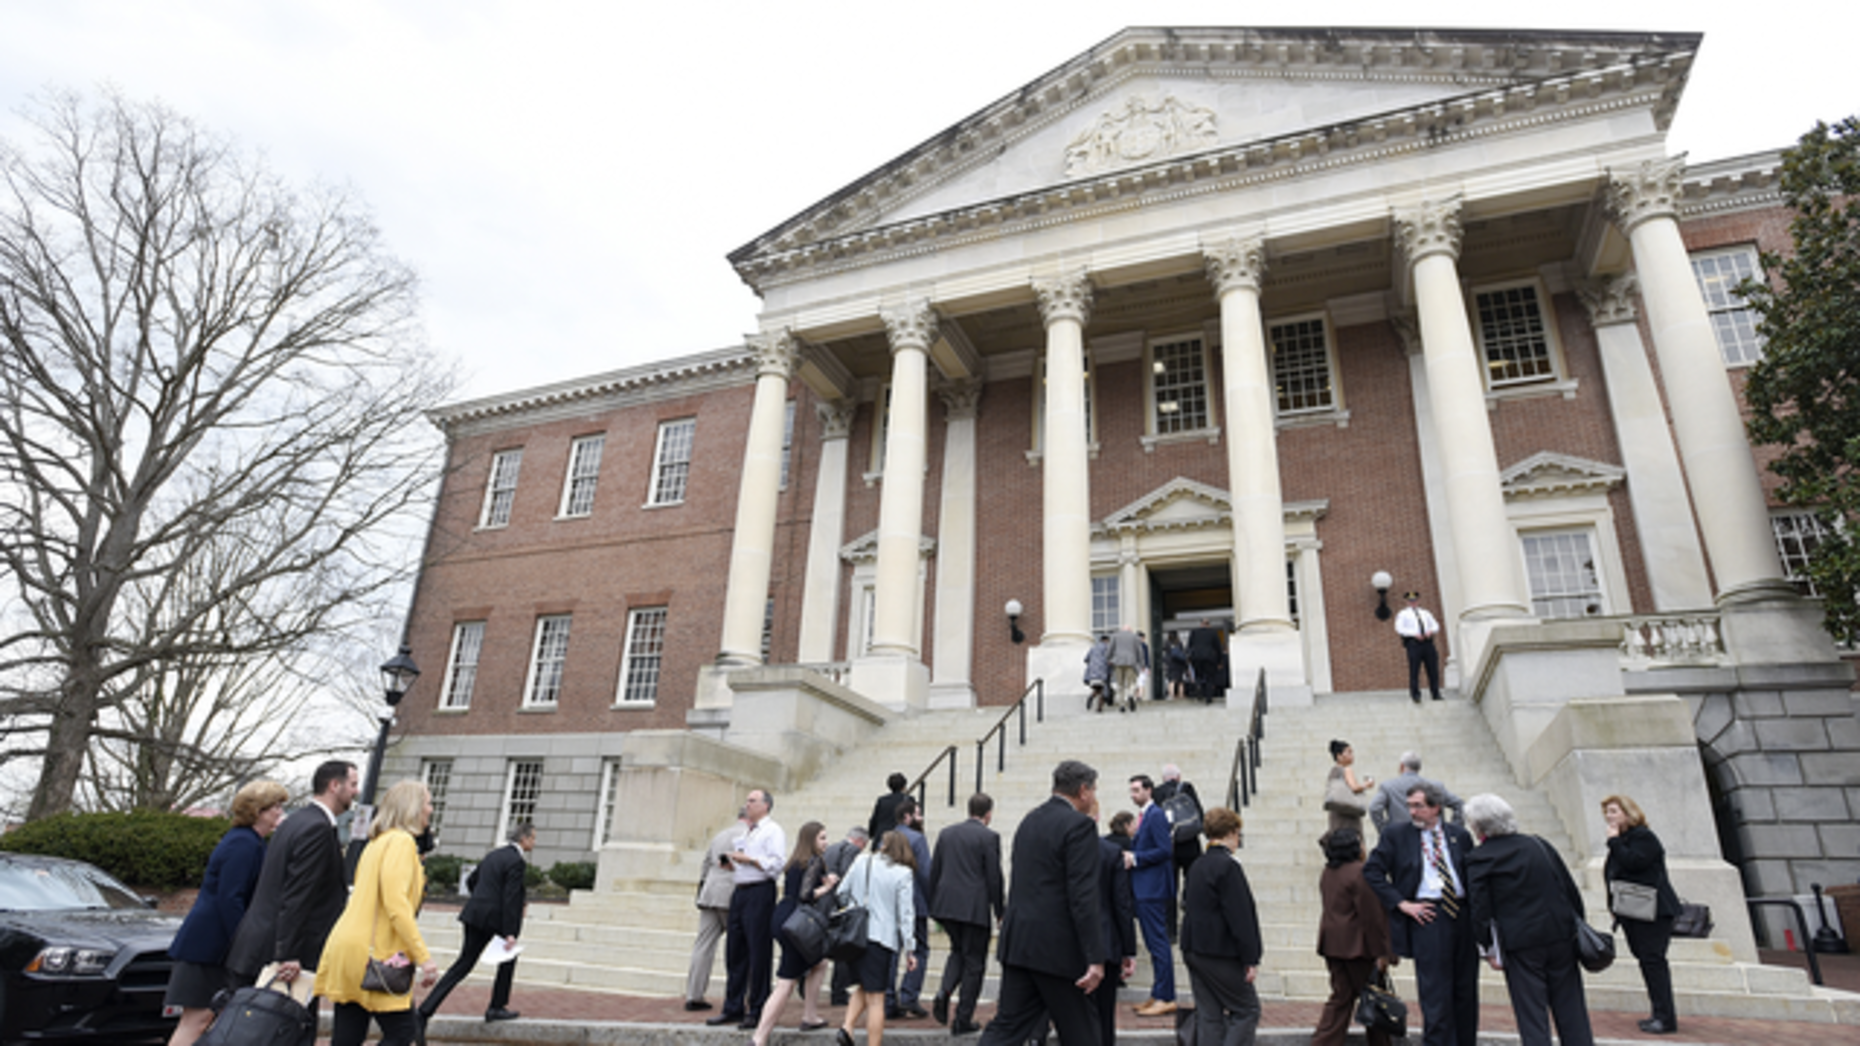 The Maryland State House in Annapolis, Md. Photo: AP.